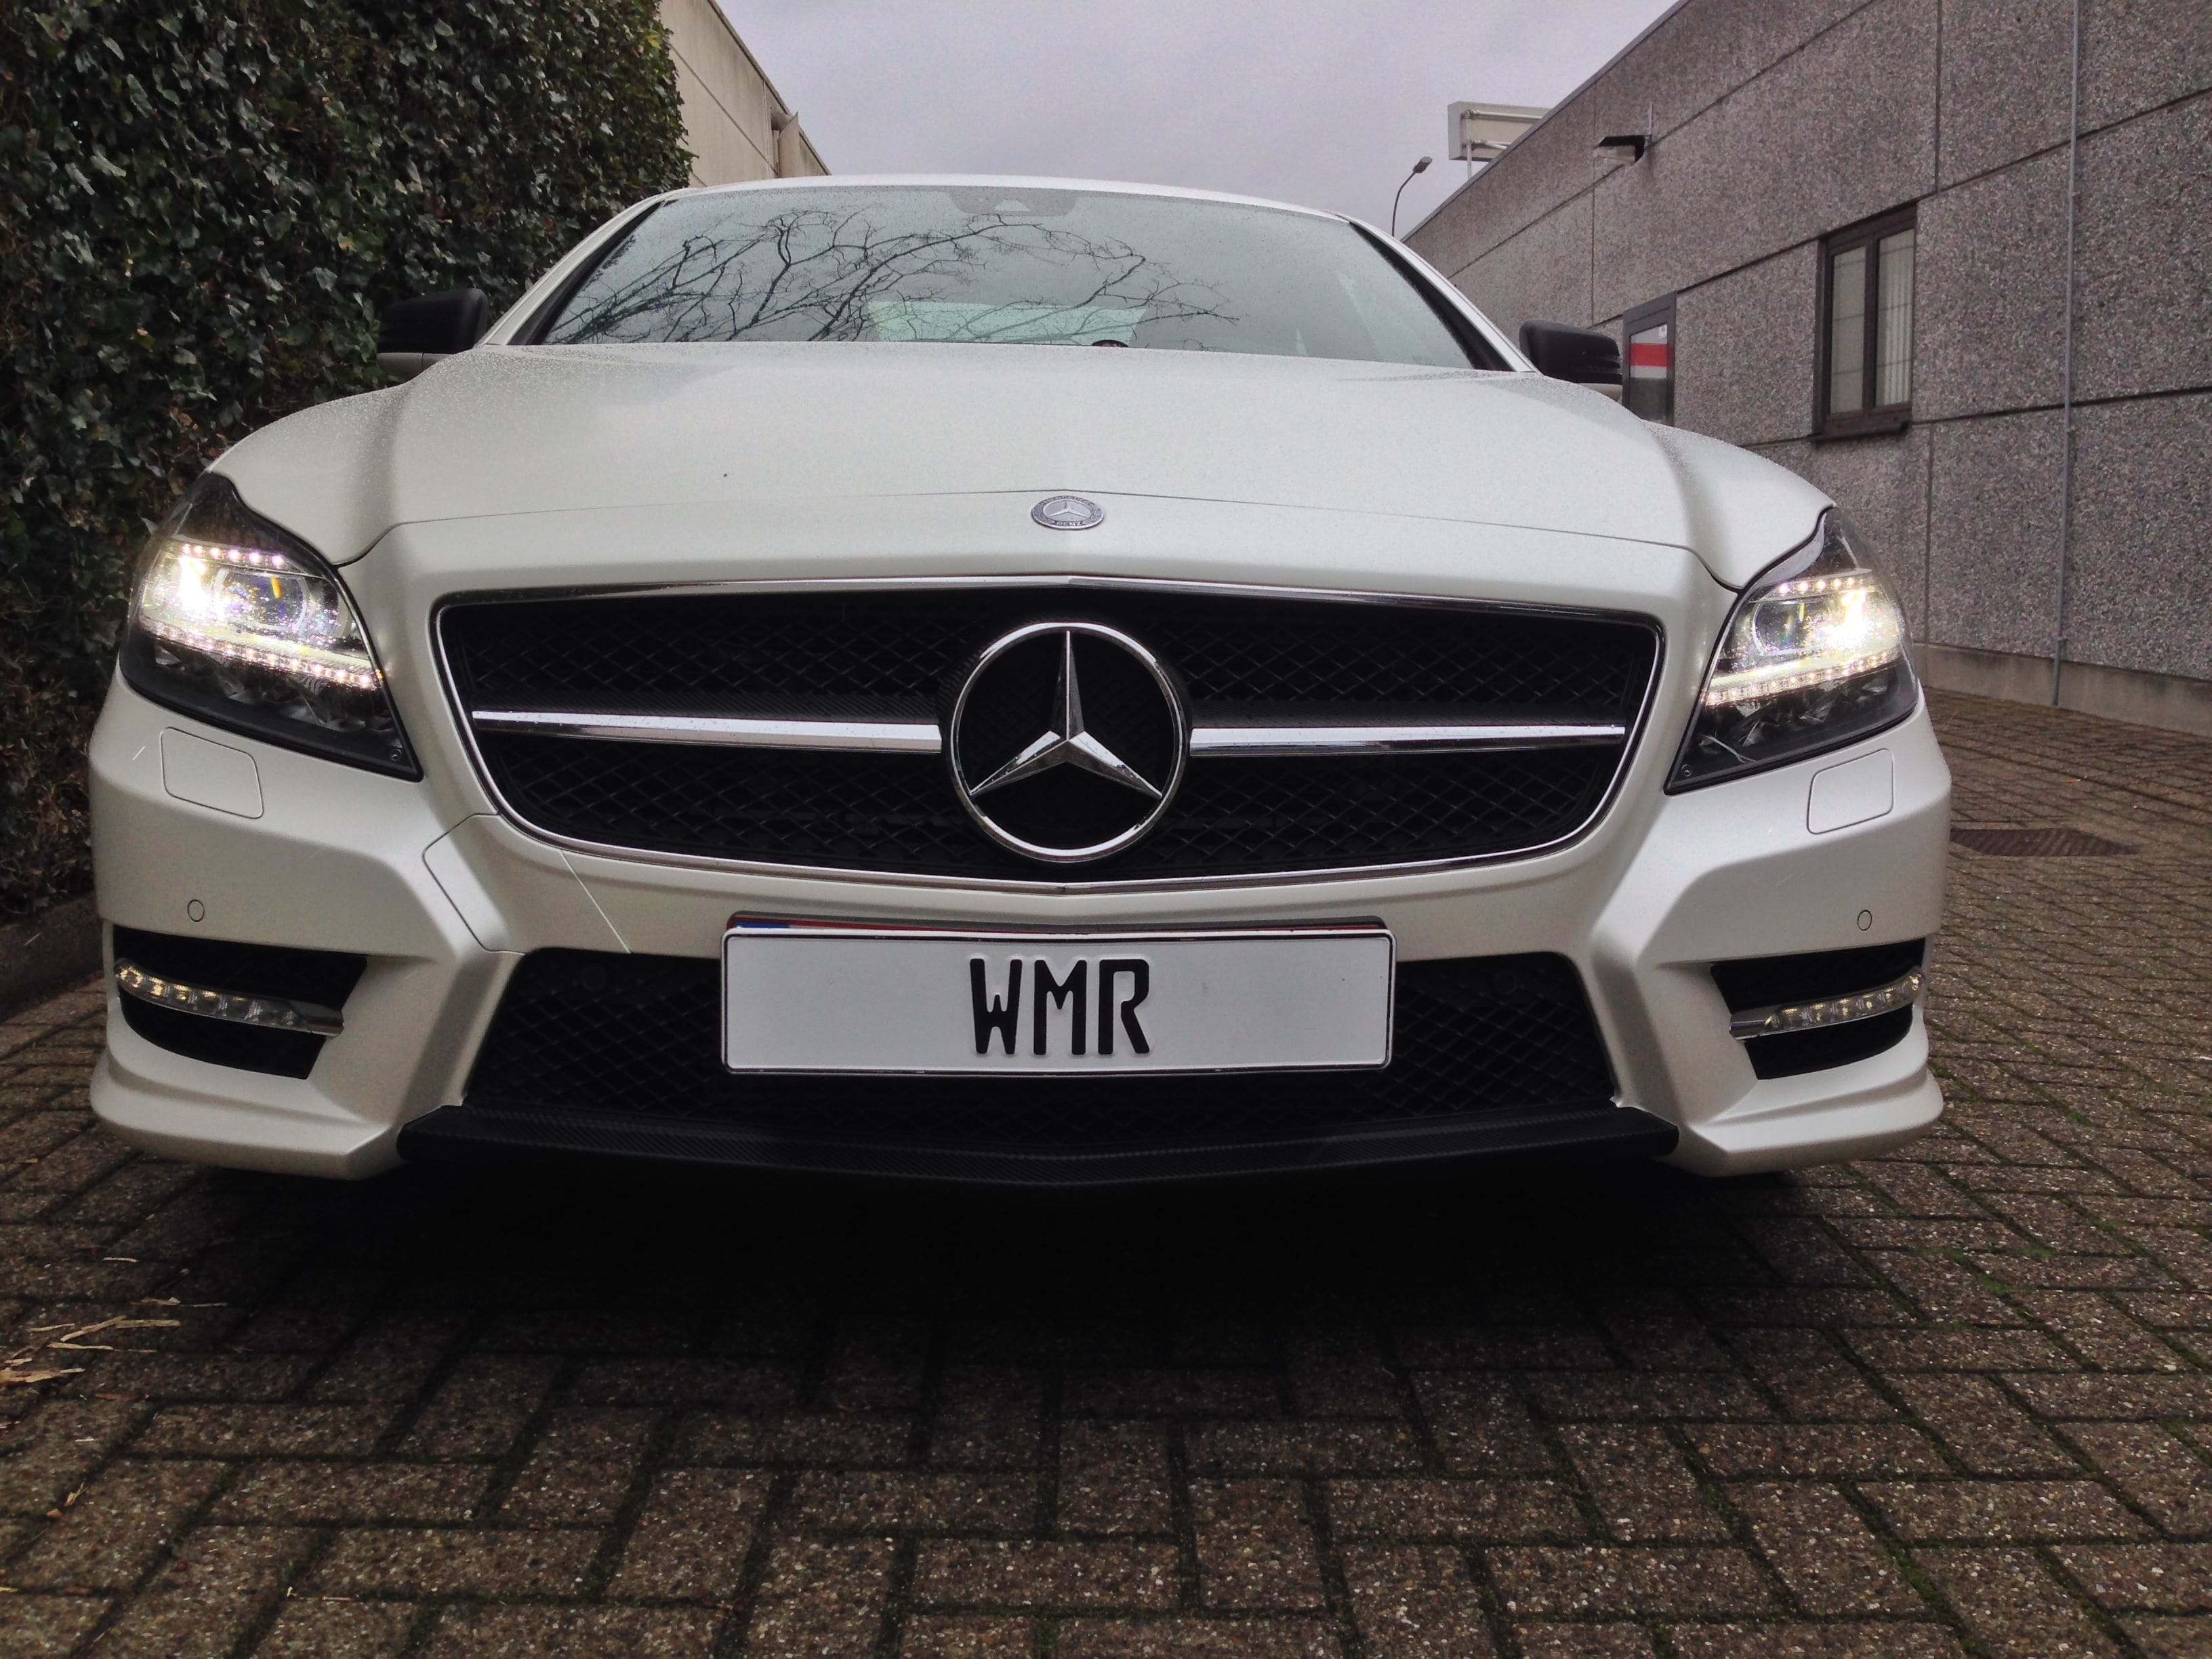 Mercedes CLS met White Satin Pearl Wrap, Carwrapping door Wrapmyride.nu Foto-nr:6206, ©2020